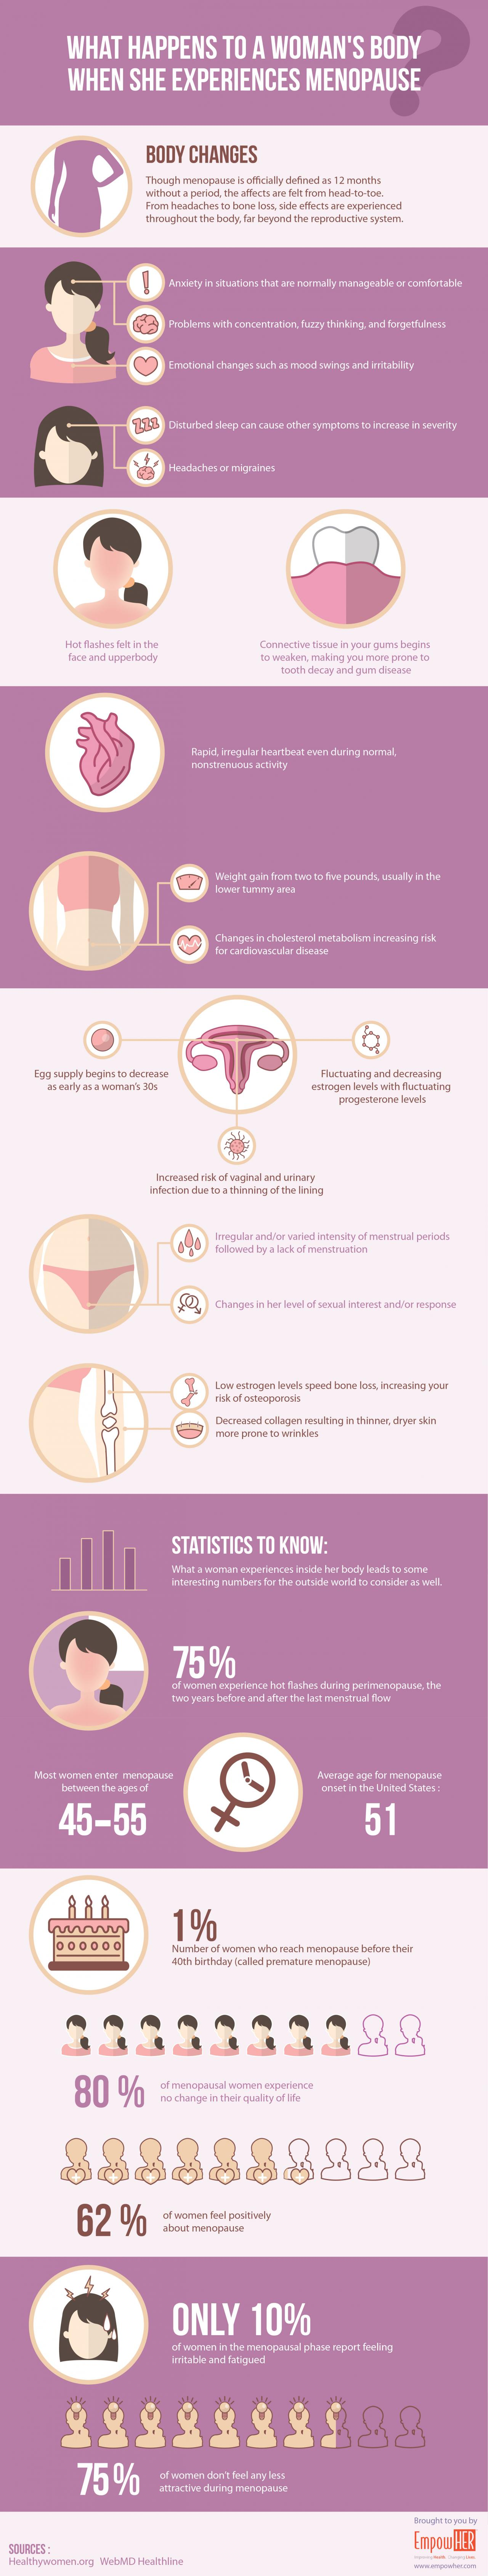 womans-body-experience-during-menopause-2-4-16.jpg